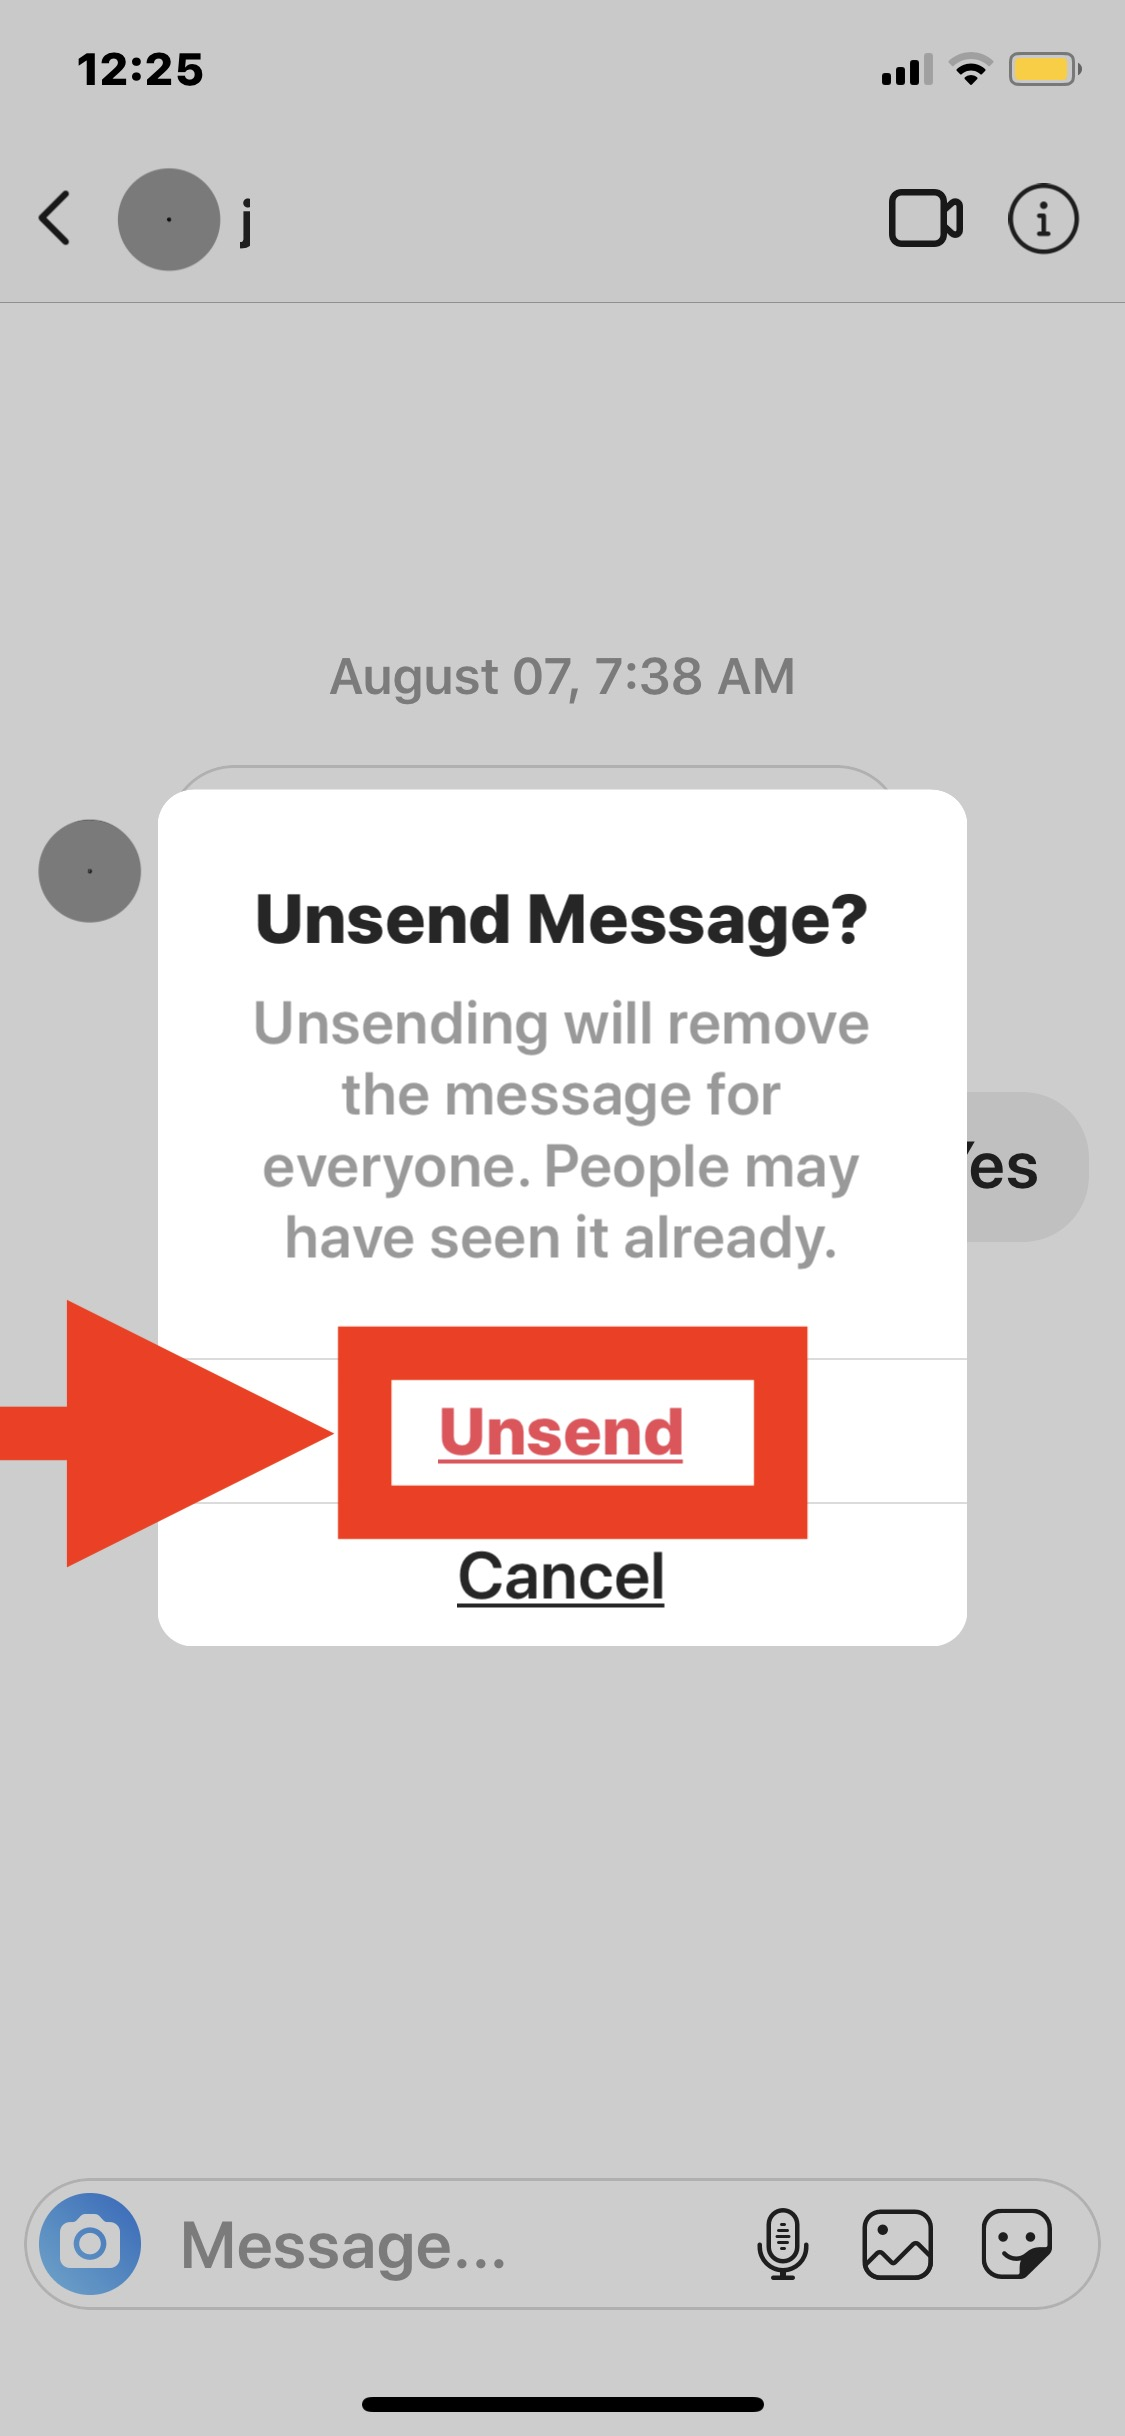 How to Unsend a Message on Instagram